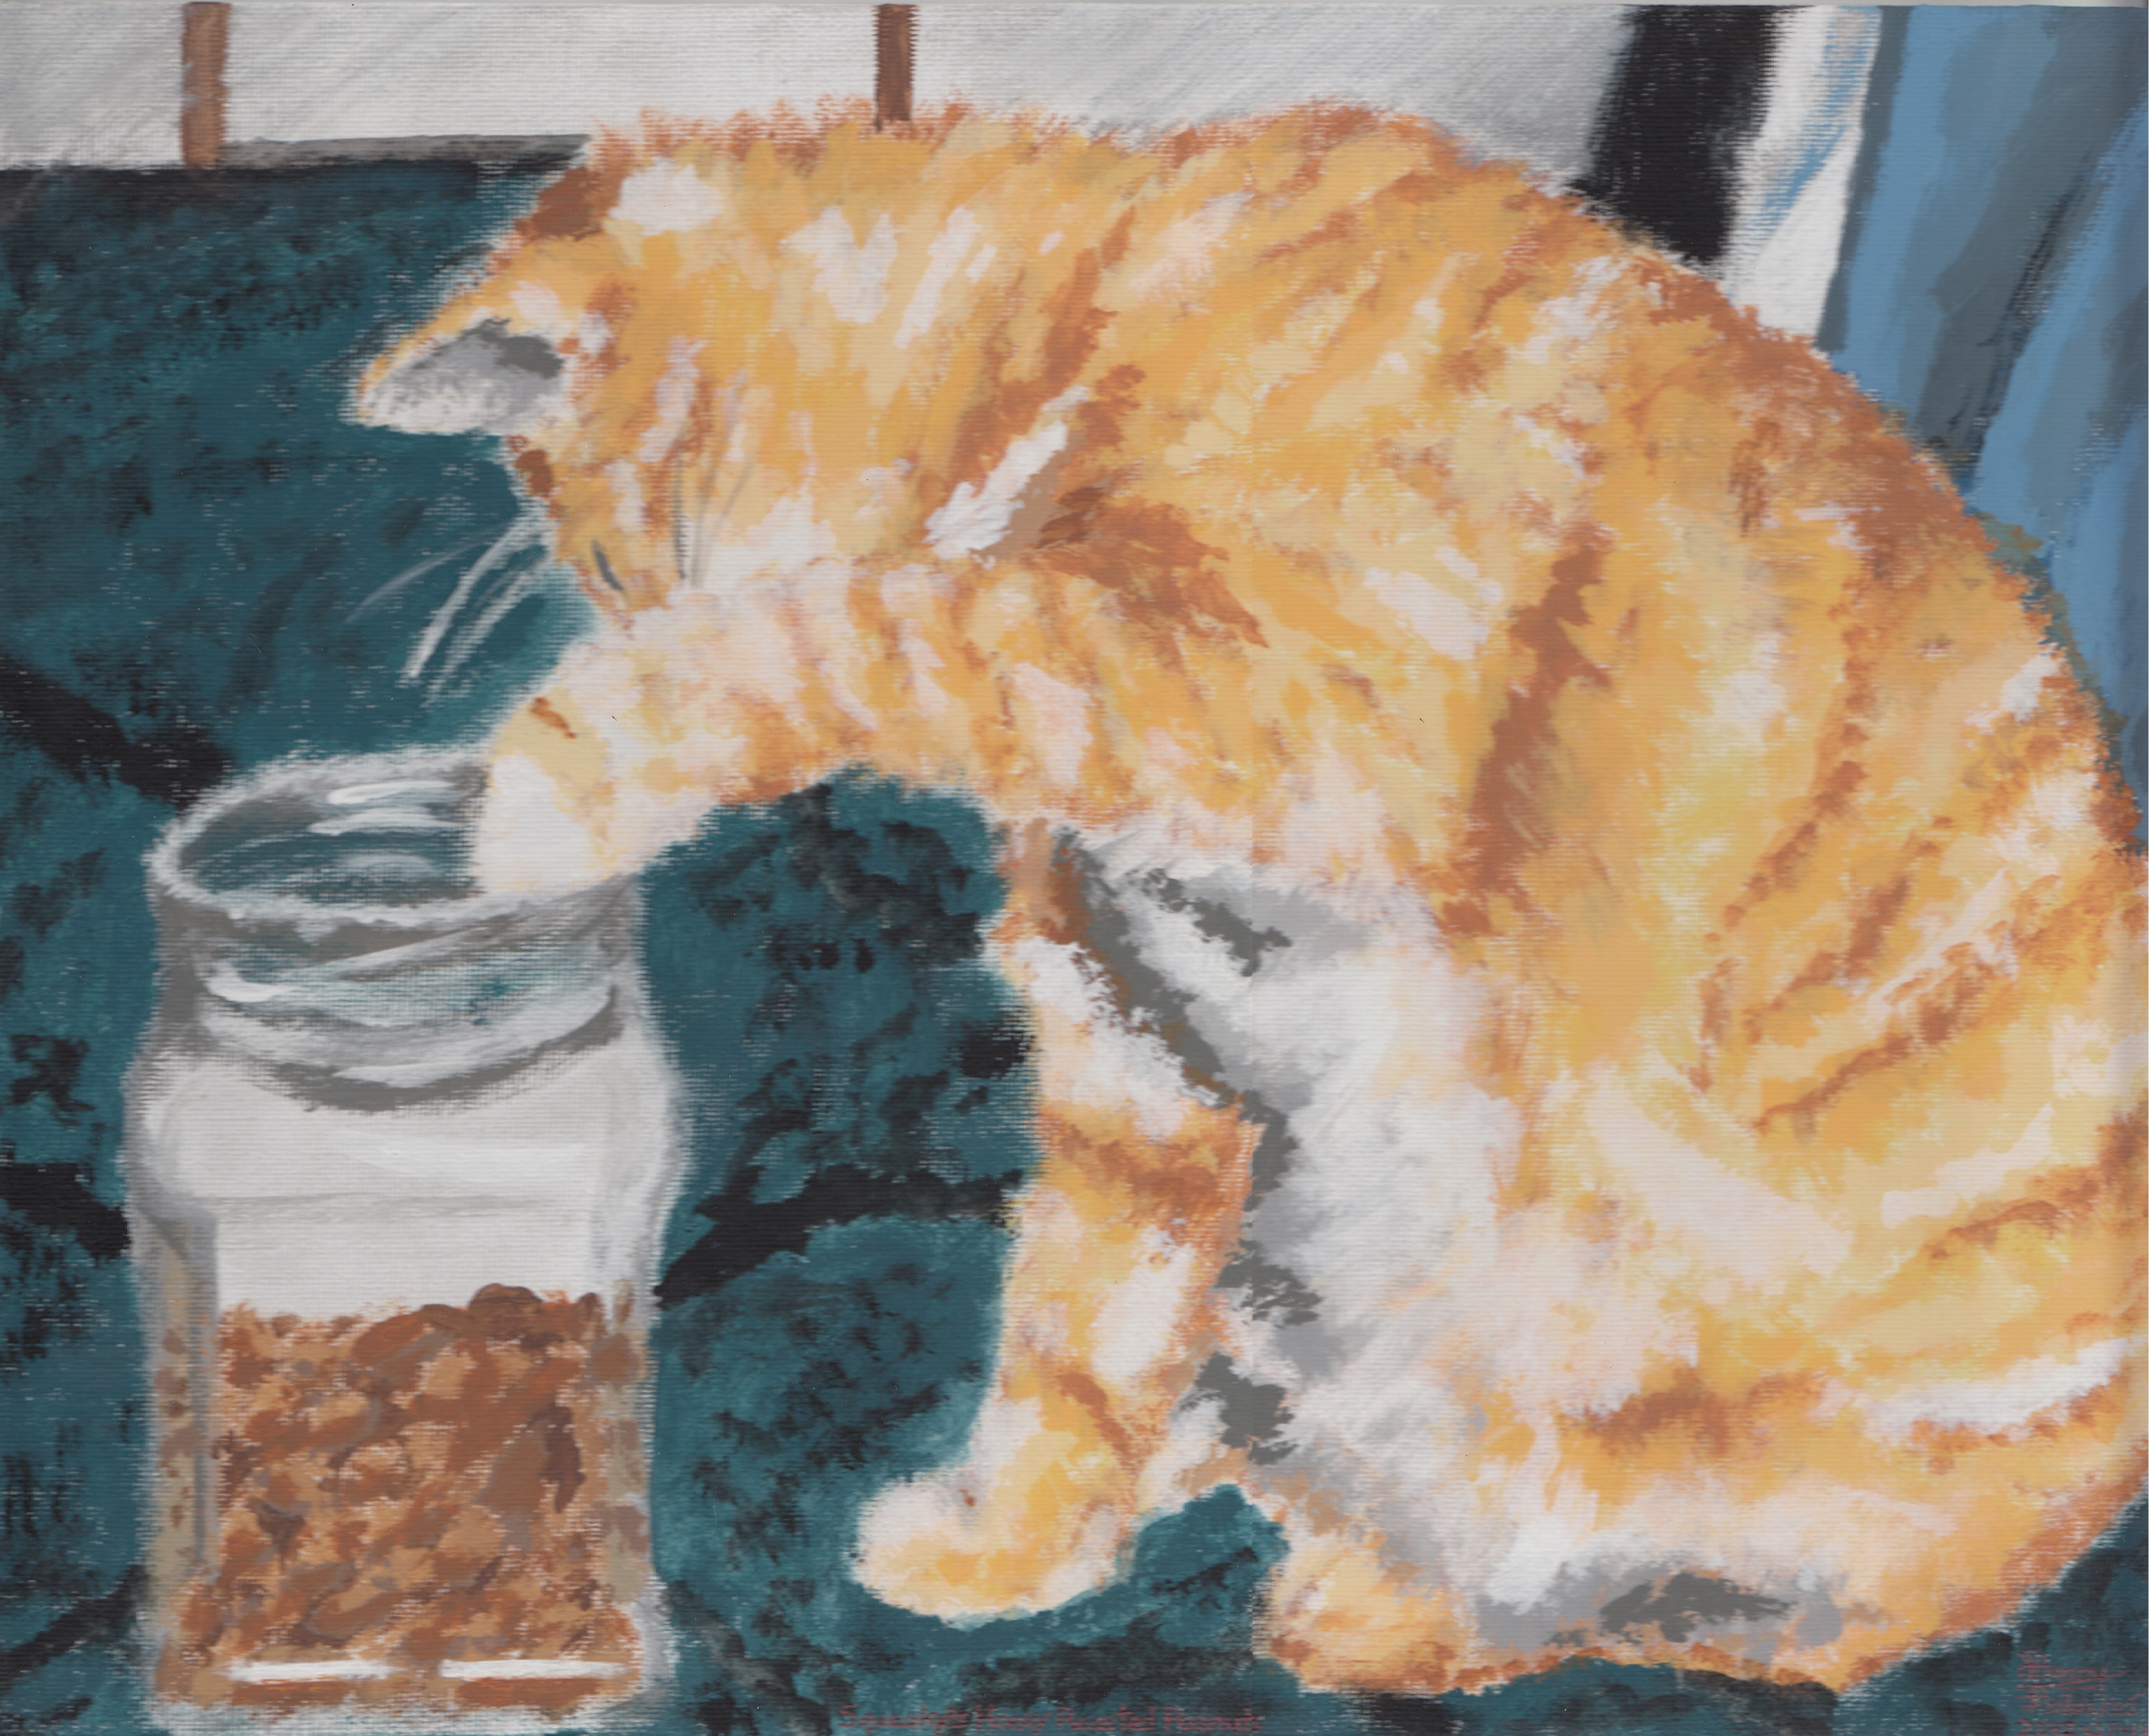 A painting of an orange cat digging into a jar of honey roasted peanuts by Danny Poloskei